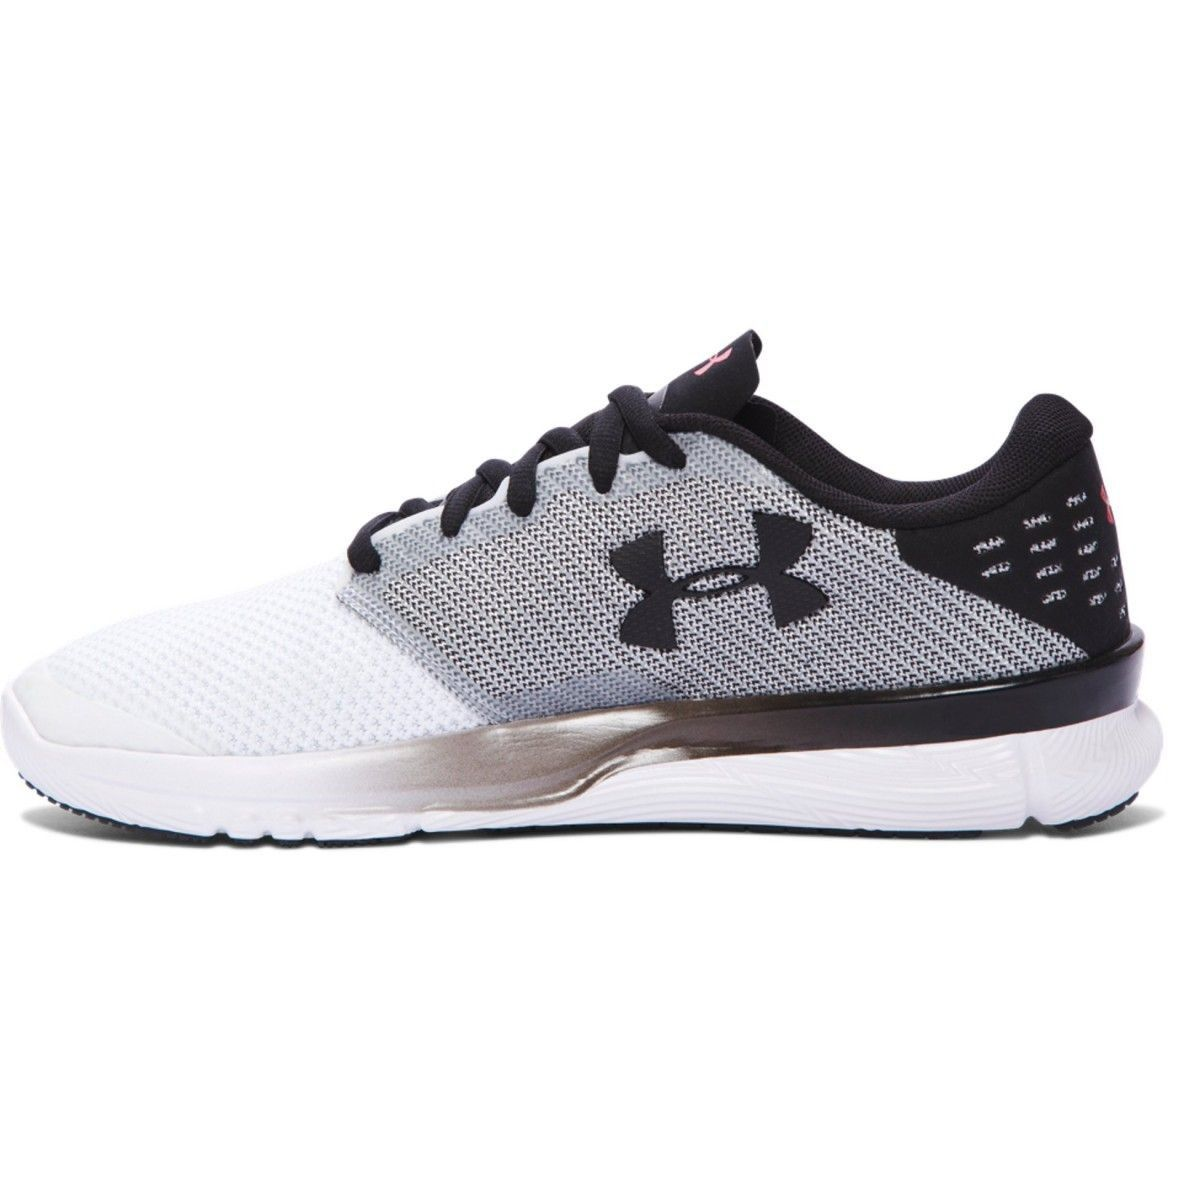 Basket Taille40 Under Reckless Charged 1288071 100 Armour QCthdxBsr